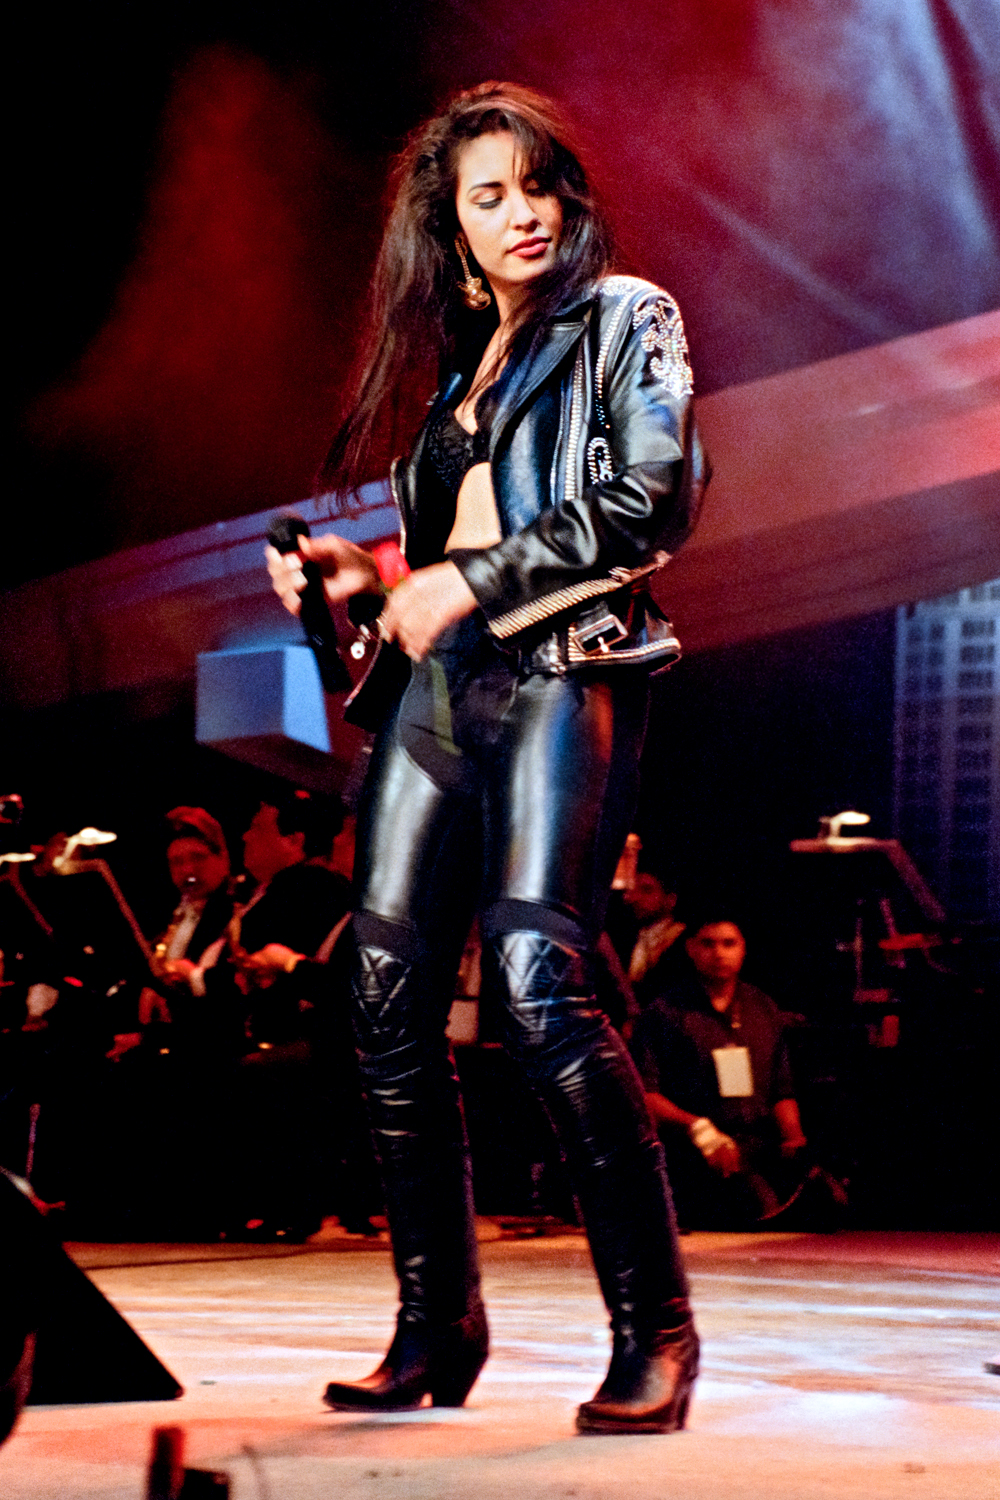 Selena on stage wearing black leather pants, jacket, and bustier